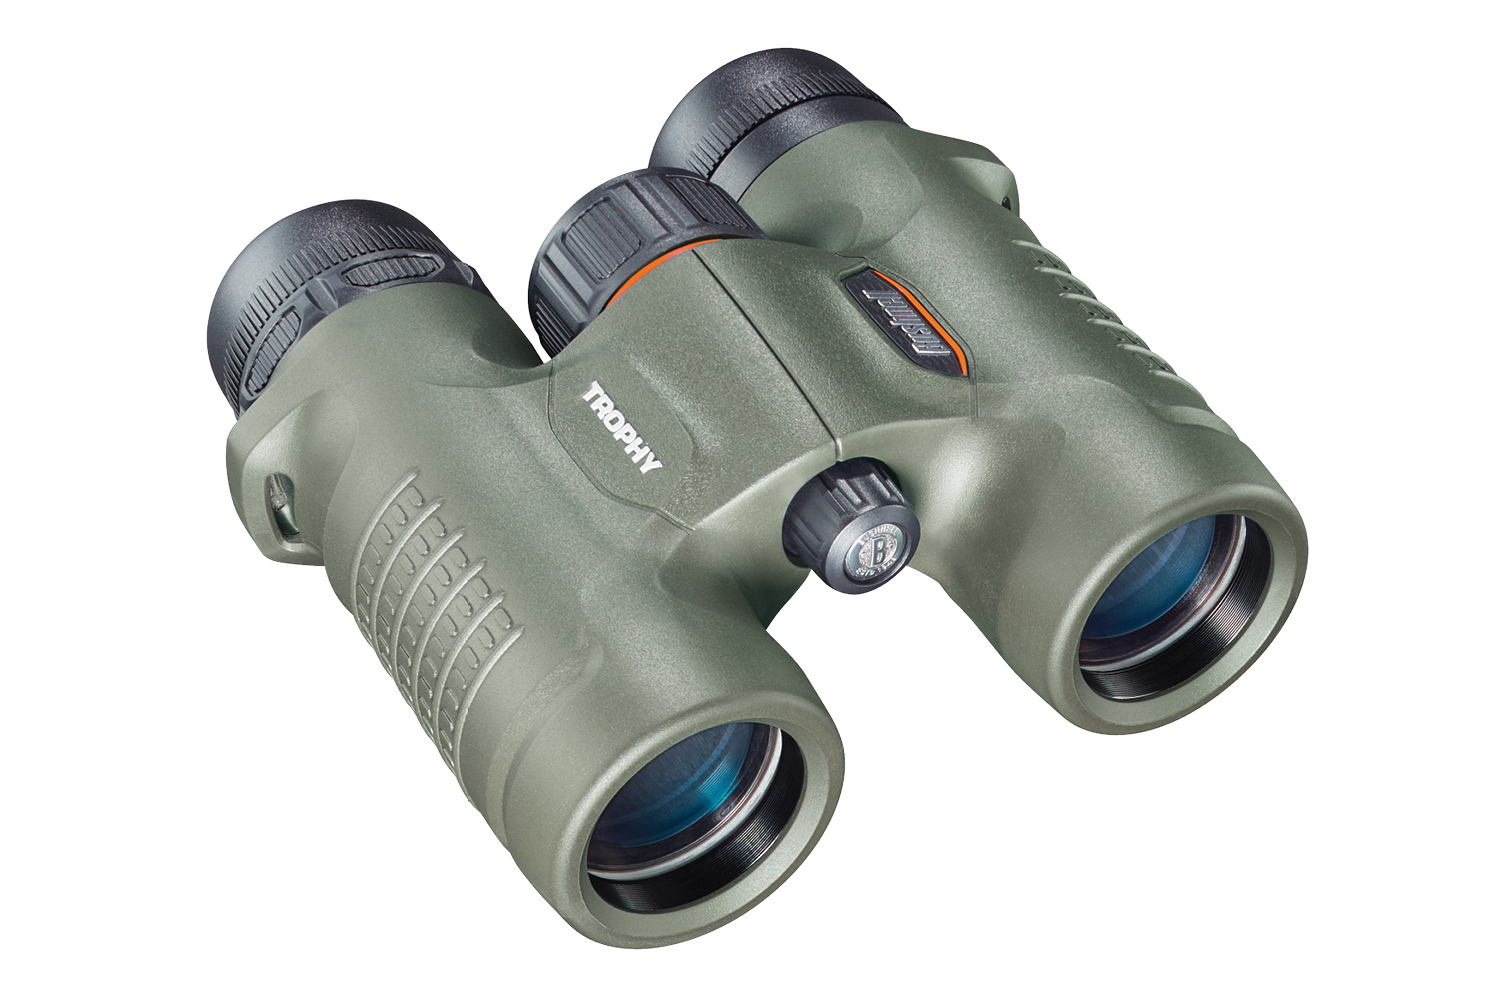 Бинокль Bushnell TROPHY 8x32 бинокль navigator 10 30x60 зеленый